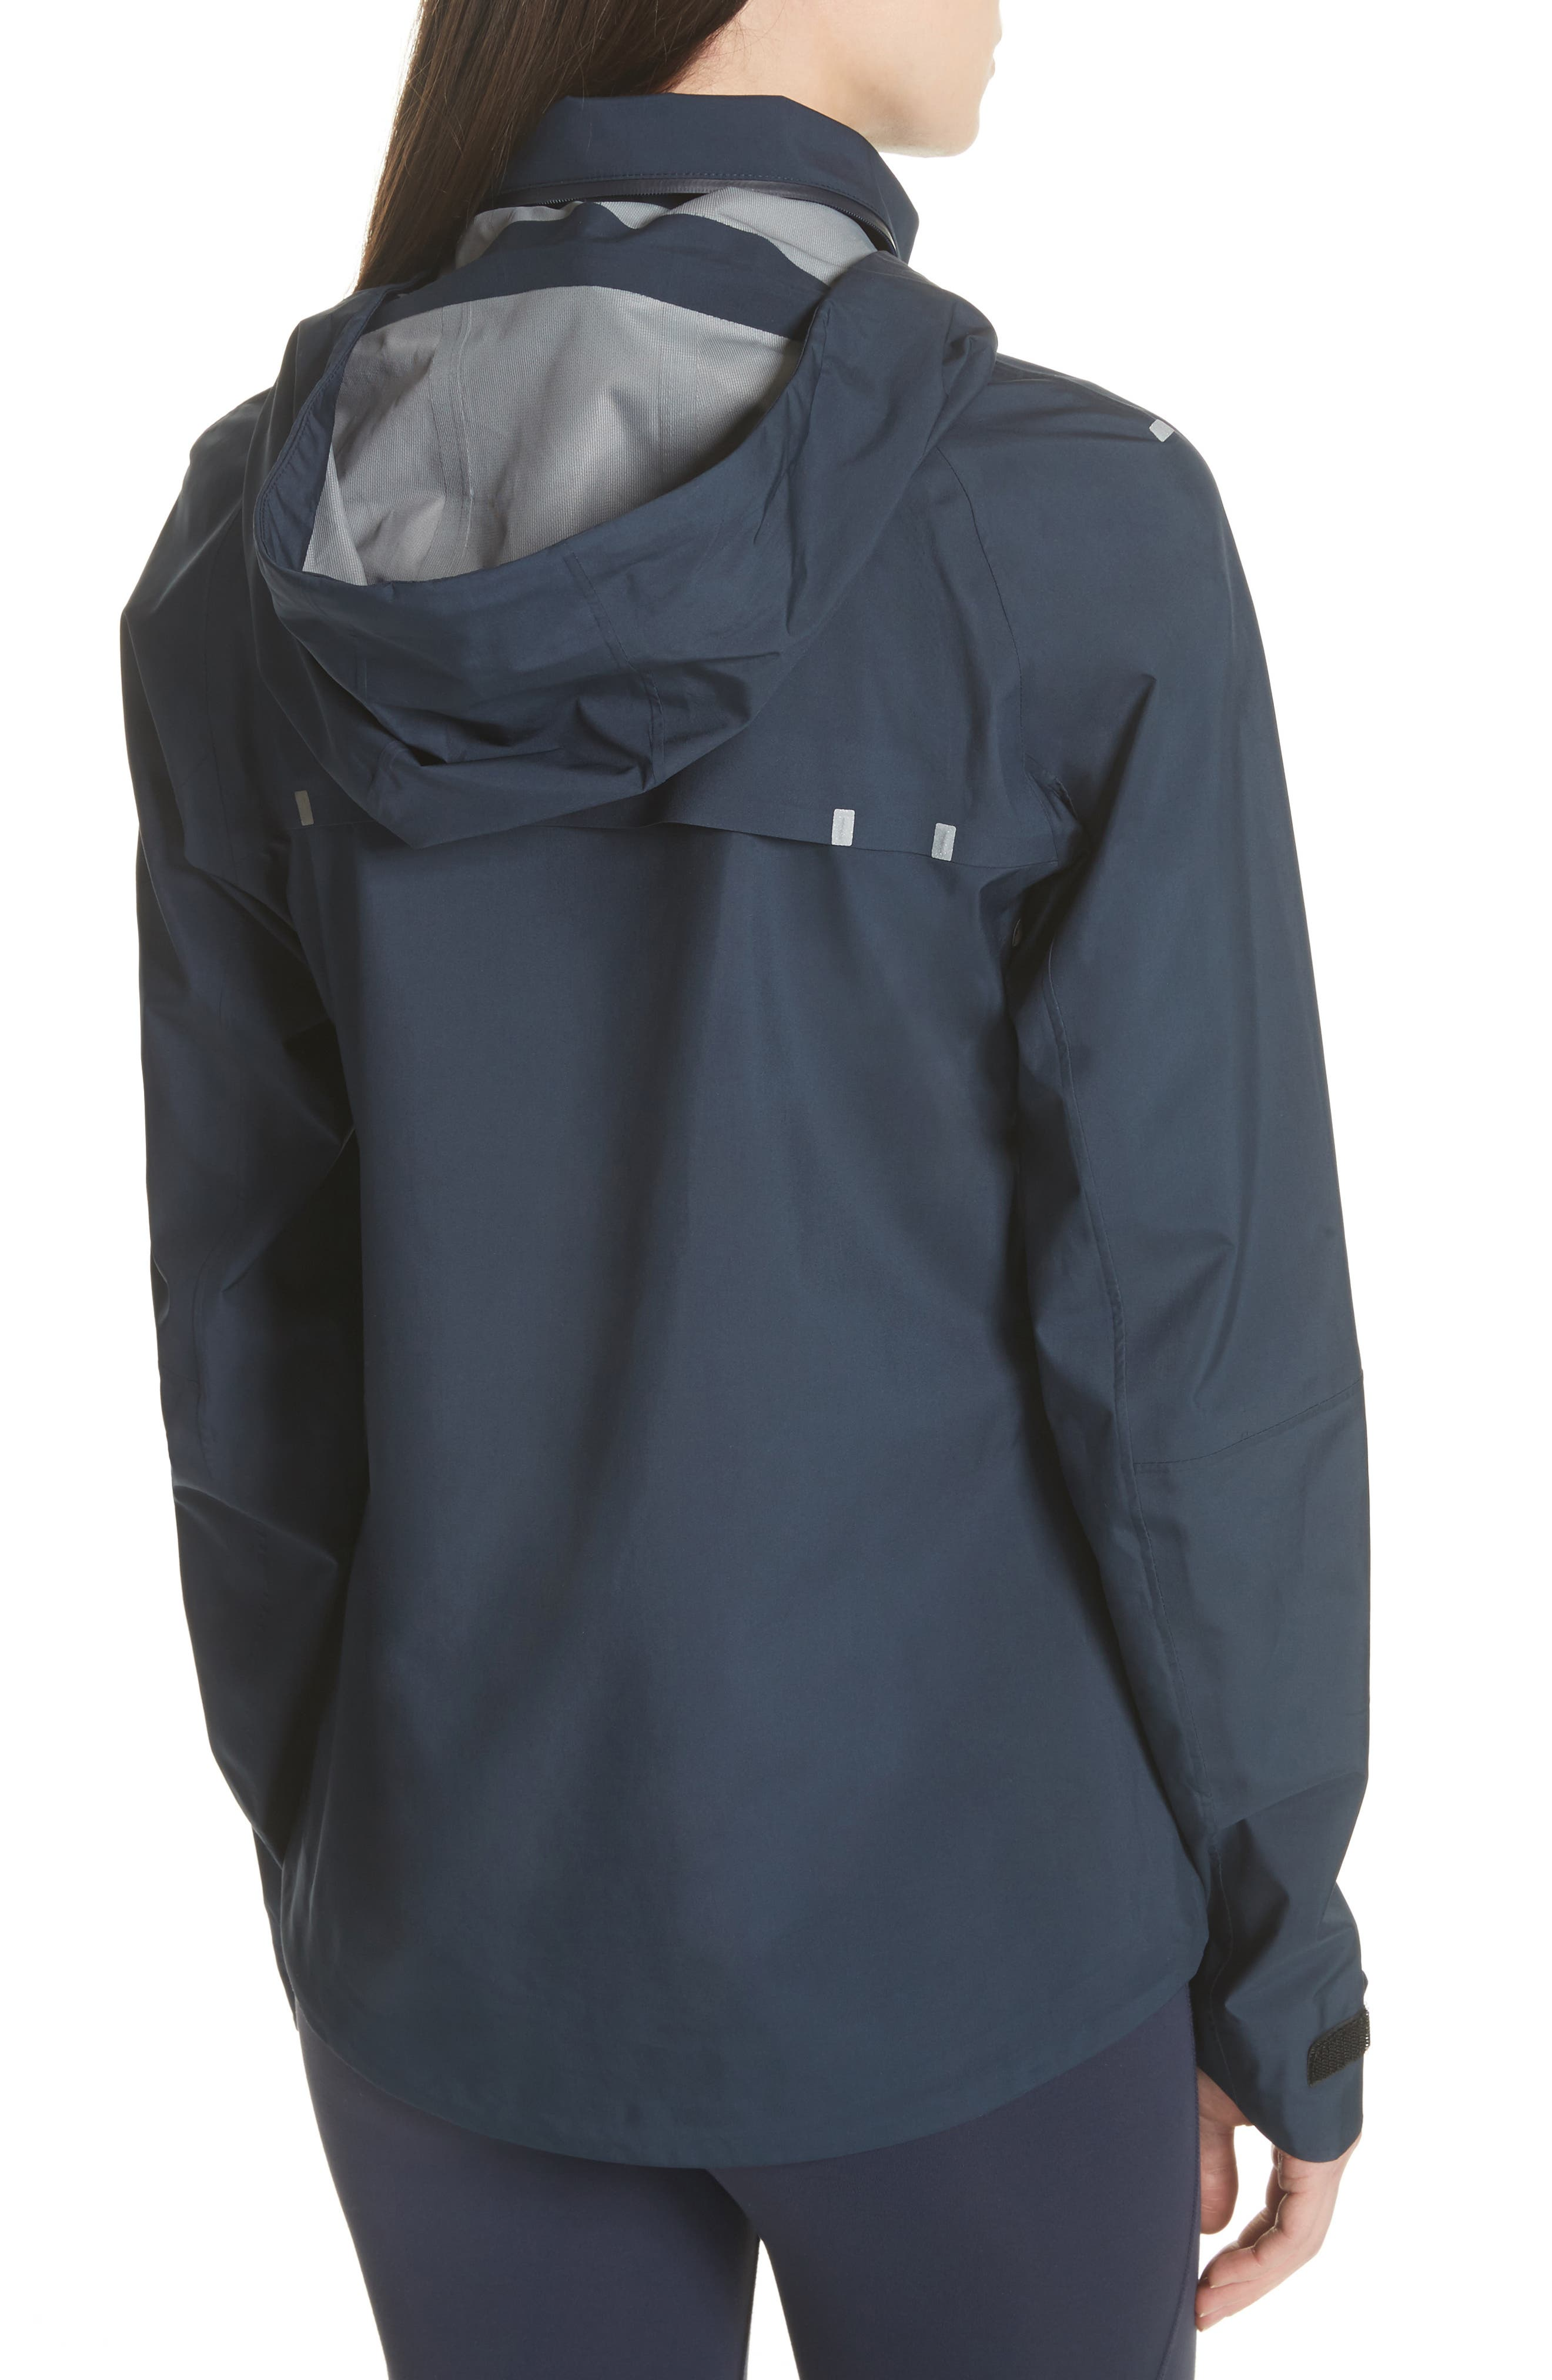 All Weather Run Jacket,                             Alternate thumbnail 2, color,                             TORY NAVY/ WHITE SNOW